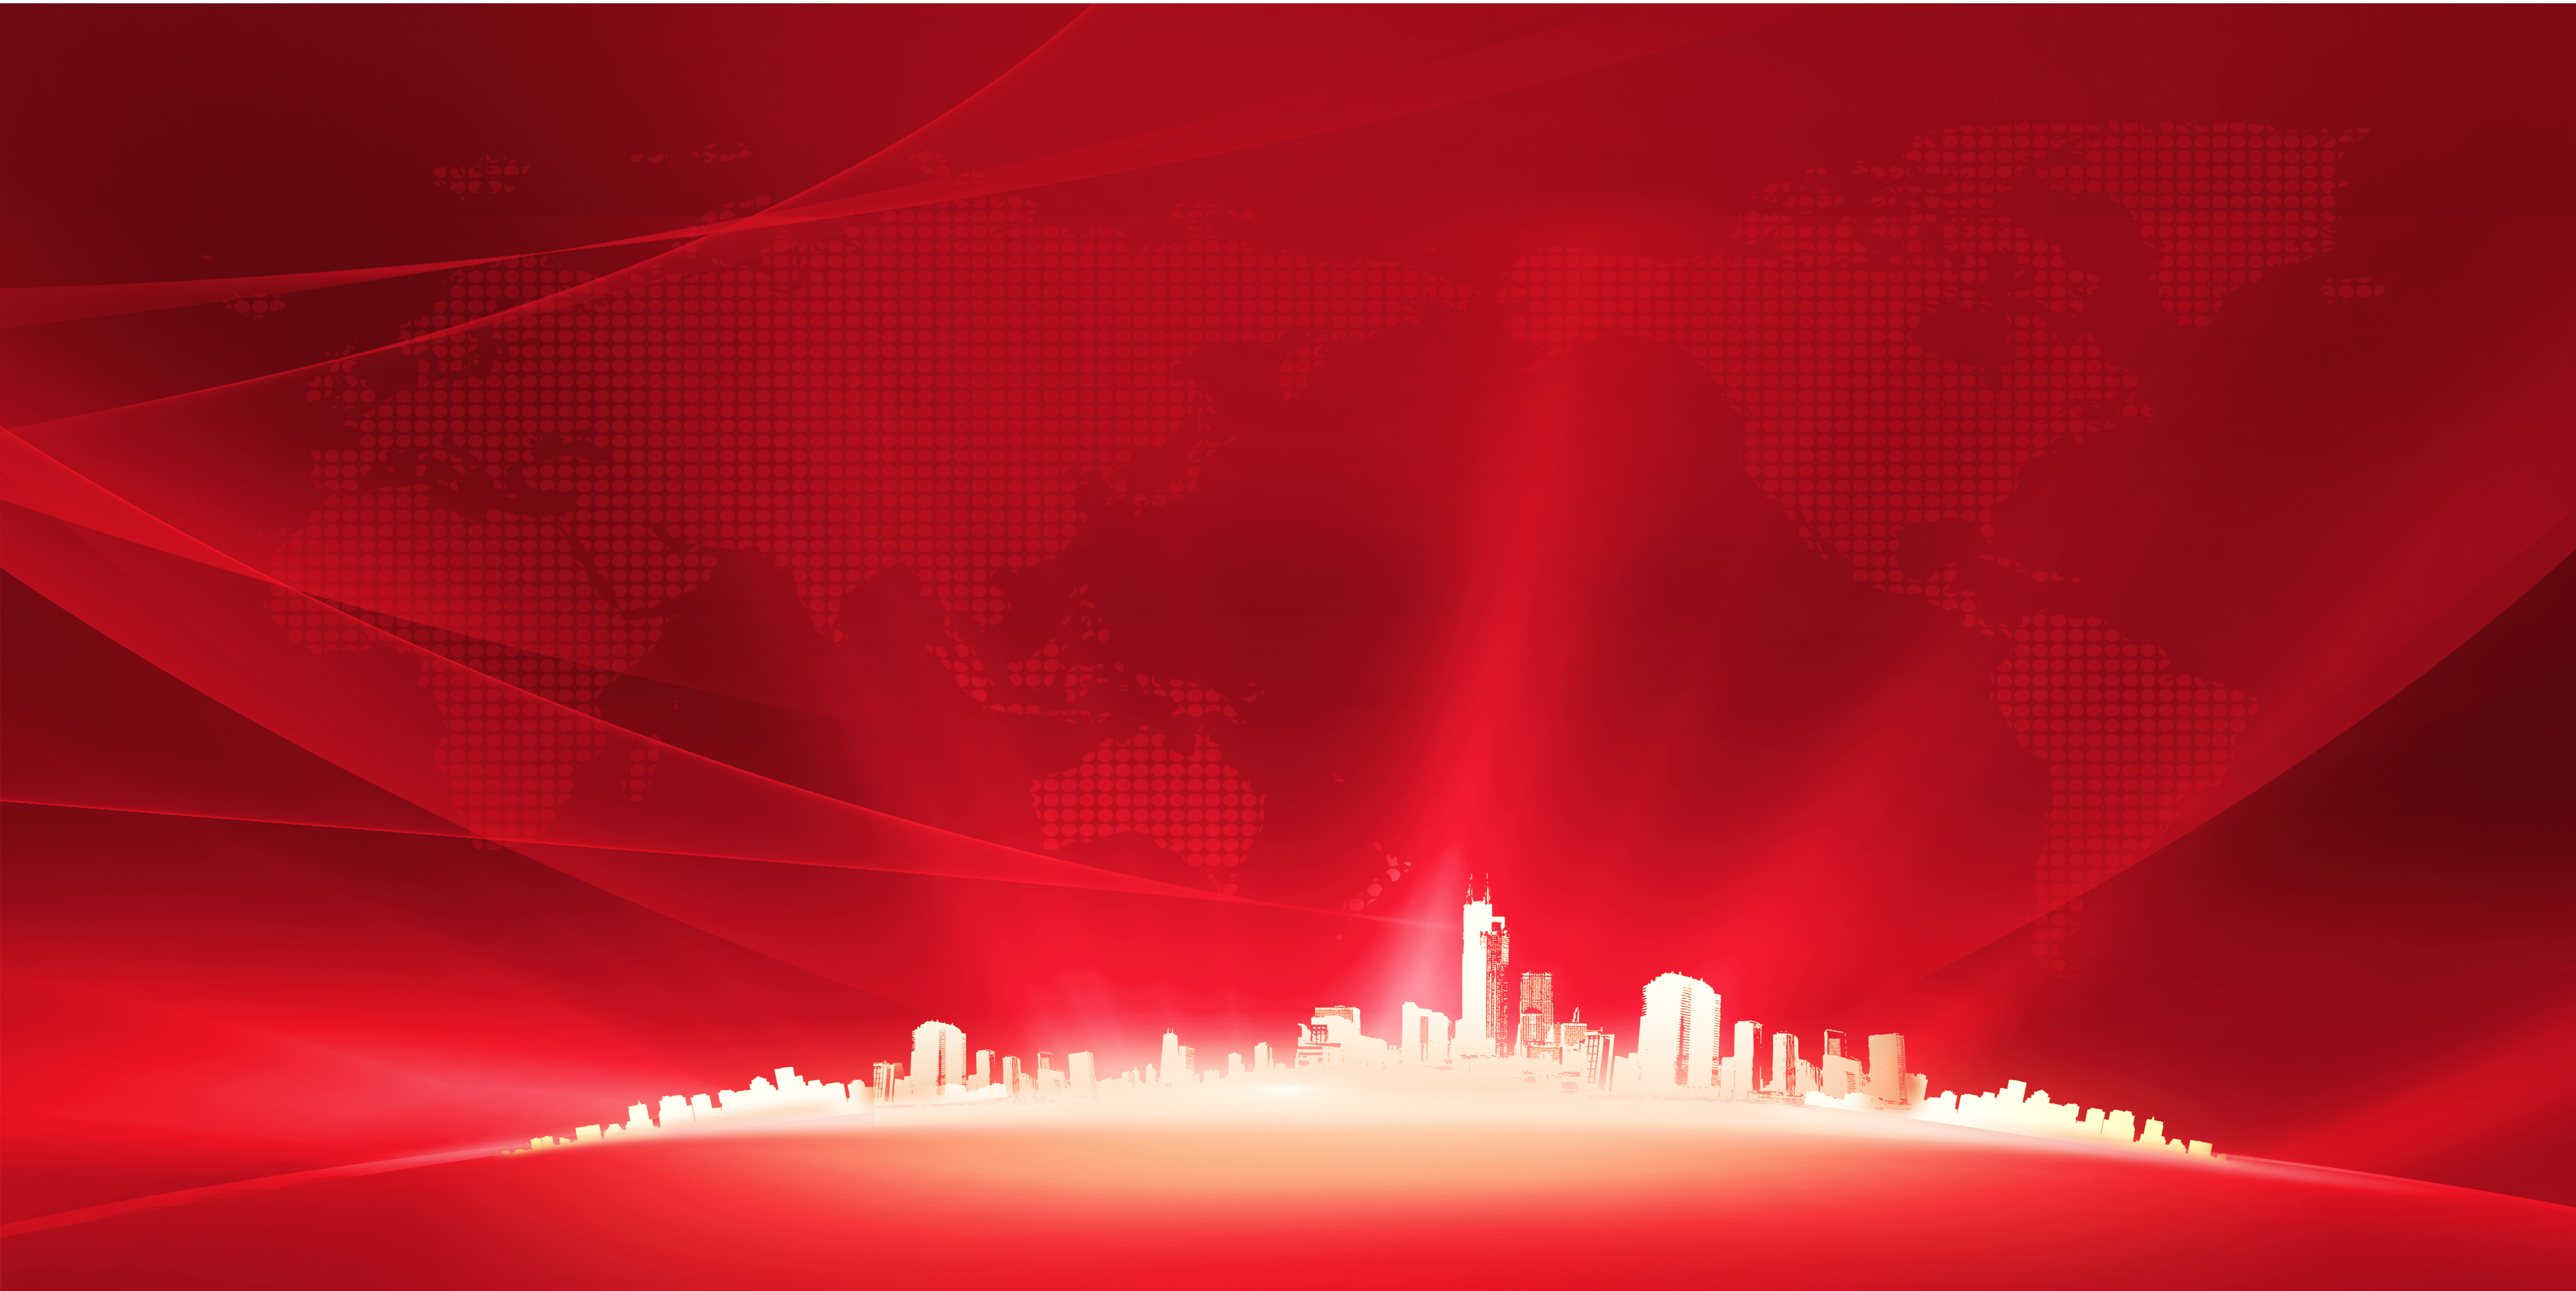 Red Scifi Background Red Science Fiction Background Image For Free Download